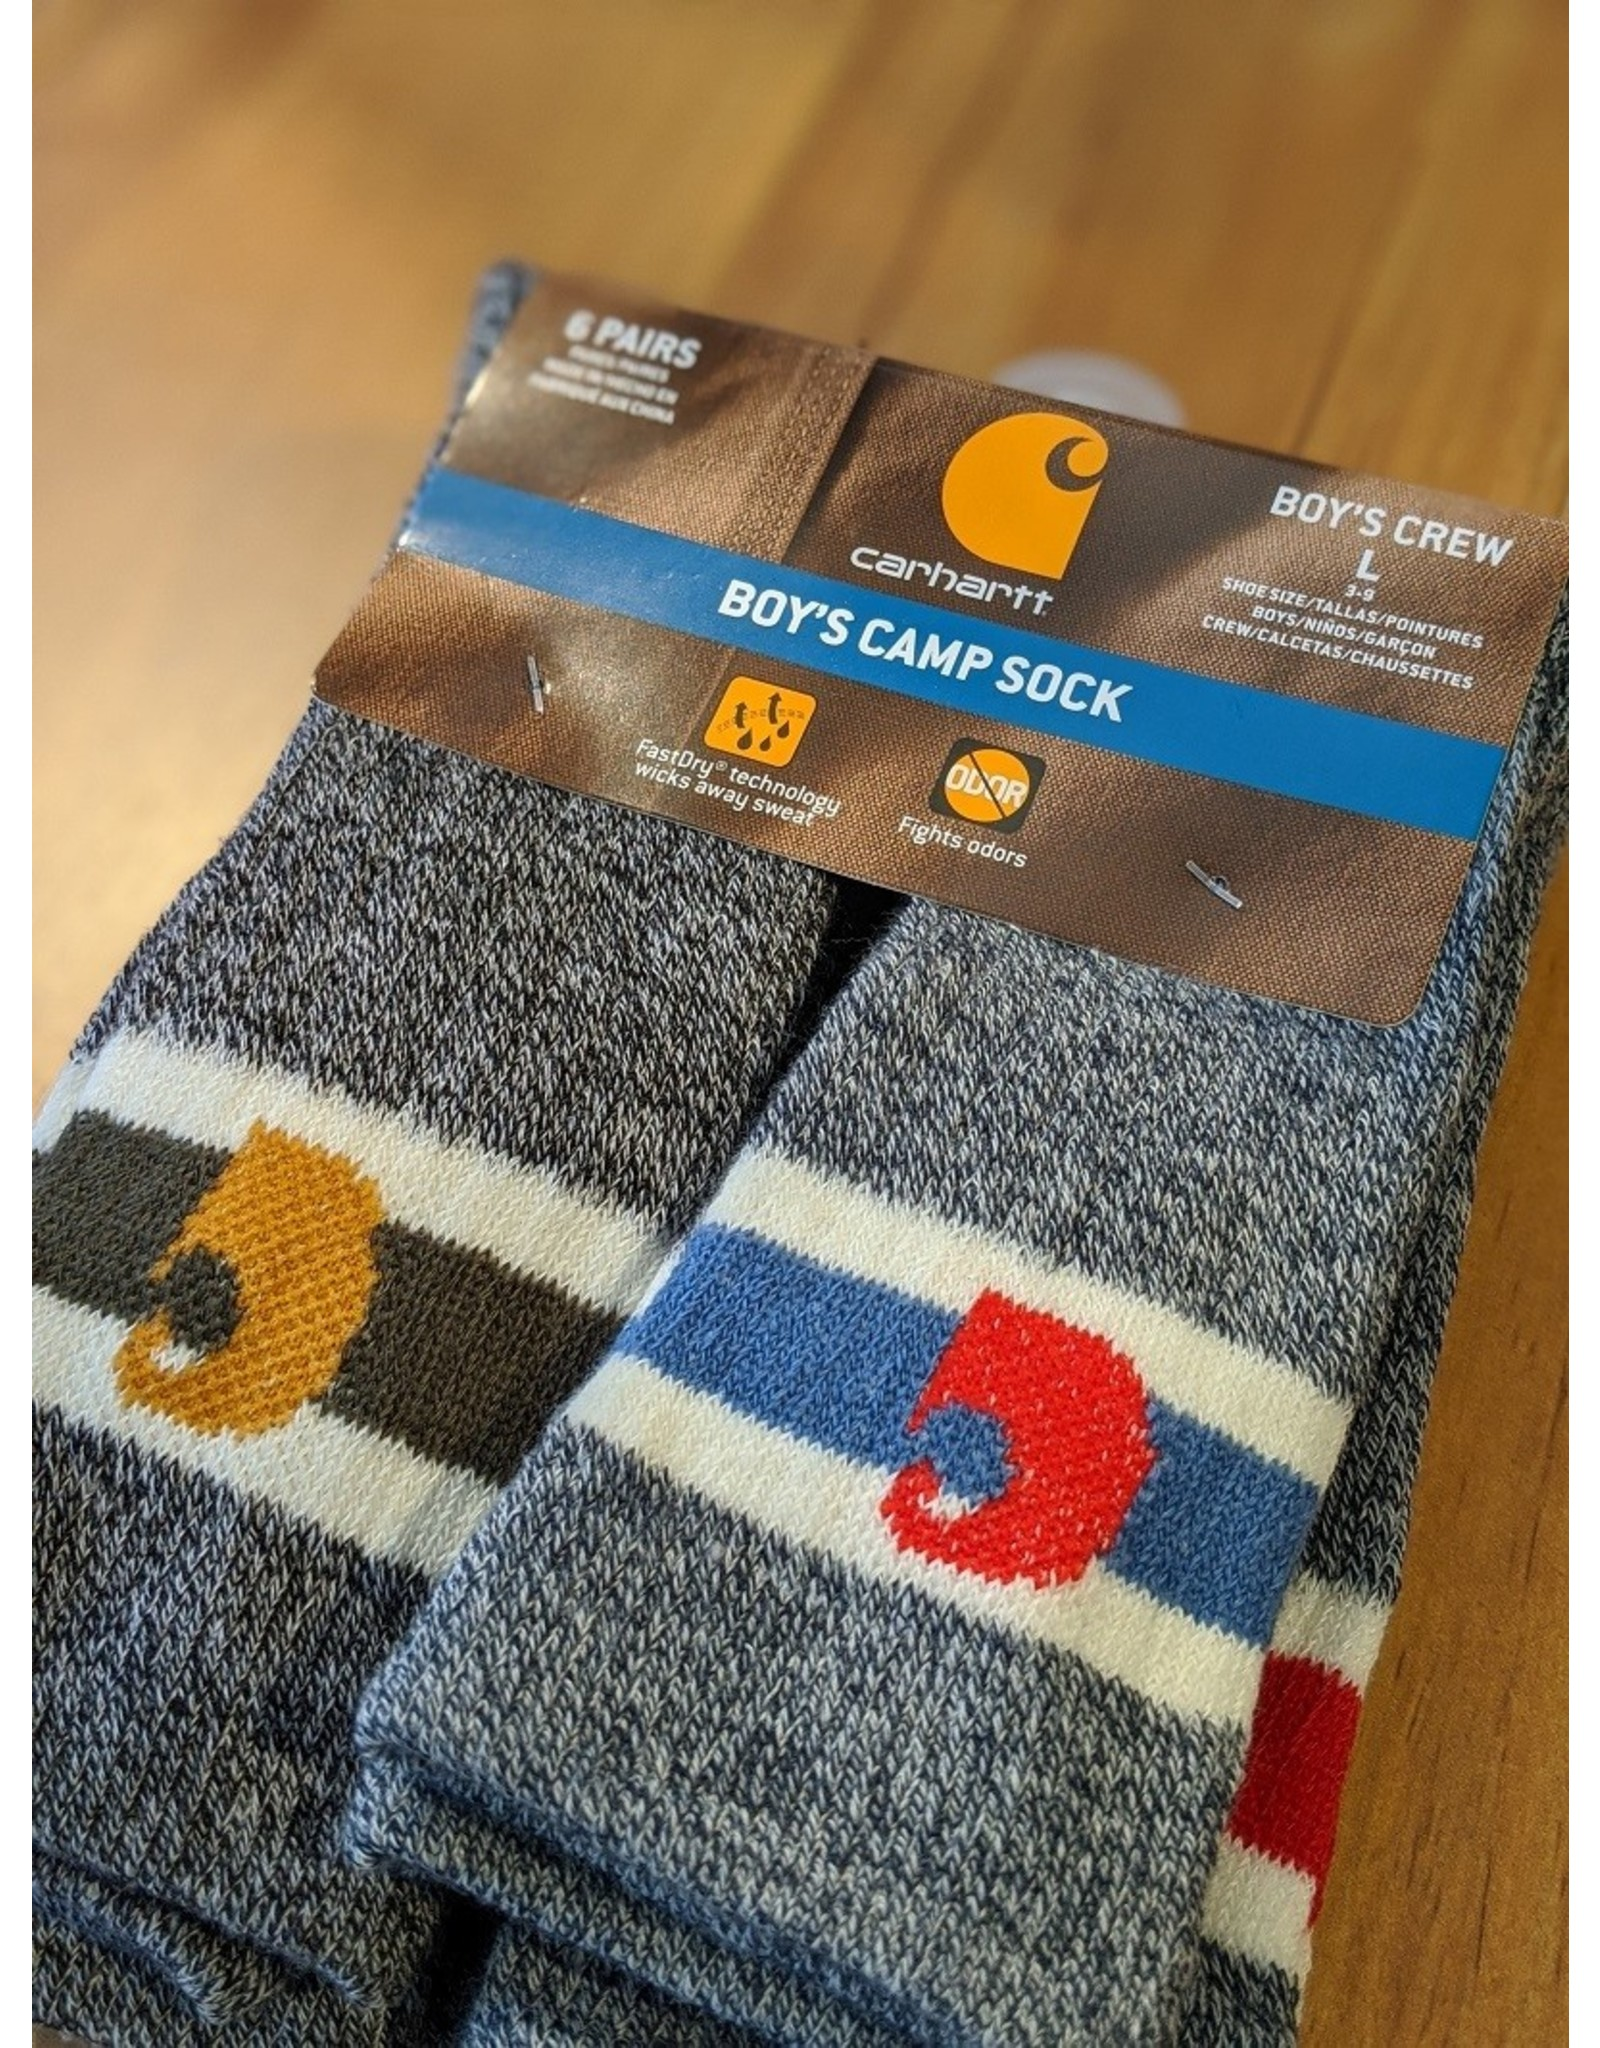 Carhartt Carhartt Boys 6pk Camp Socks